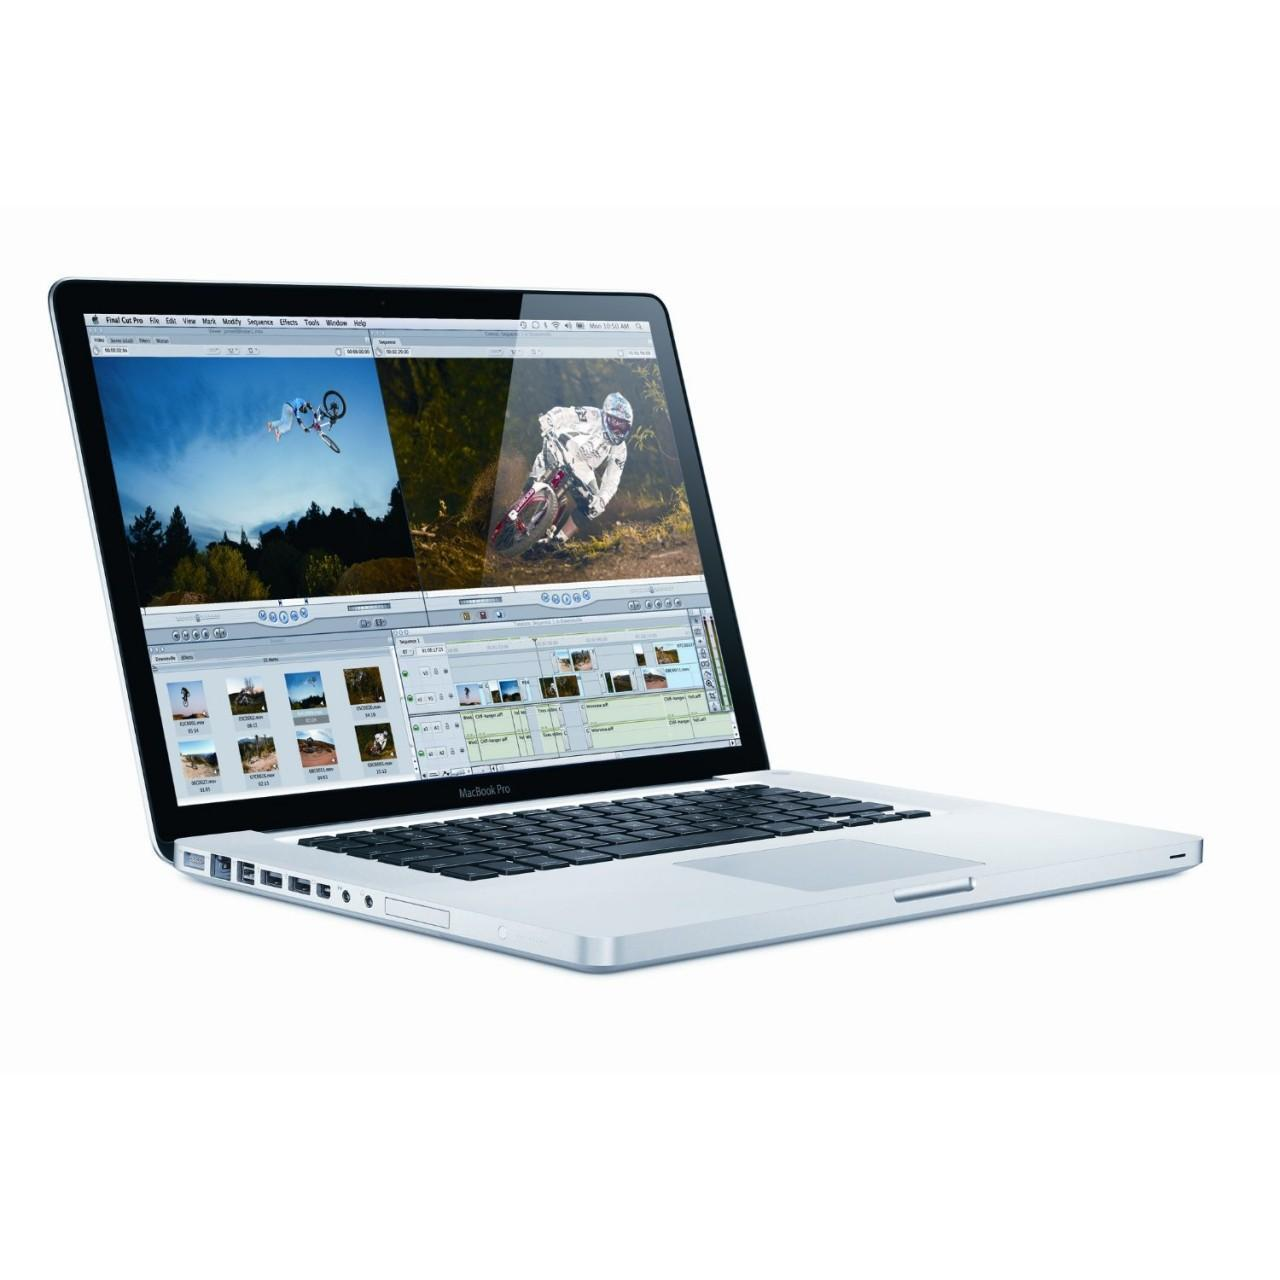 macbook pro 13 core 2 duo ghz hdd 500 go ram 4 go reconditionn back market. Black Bedroom Furniture Sets. Home Design Ideas